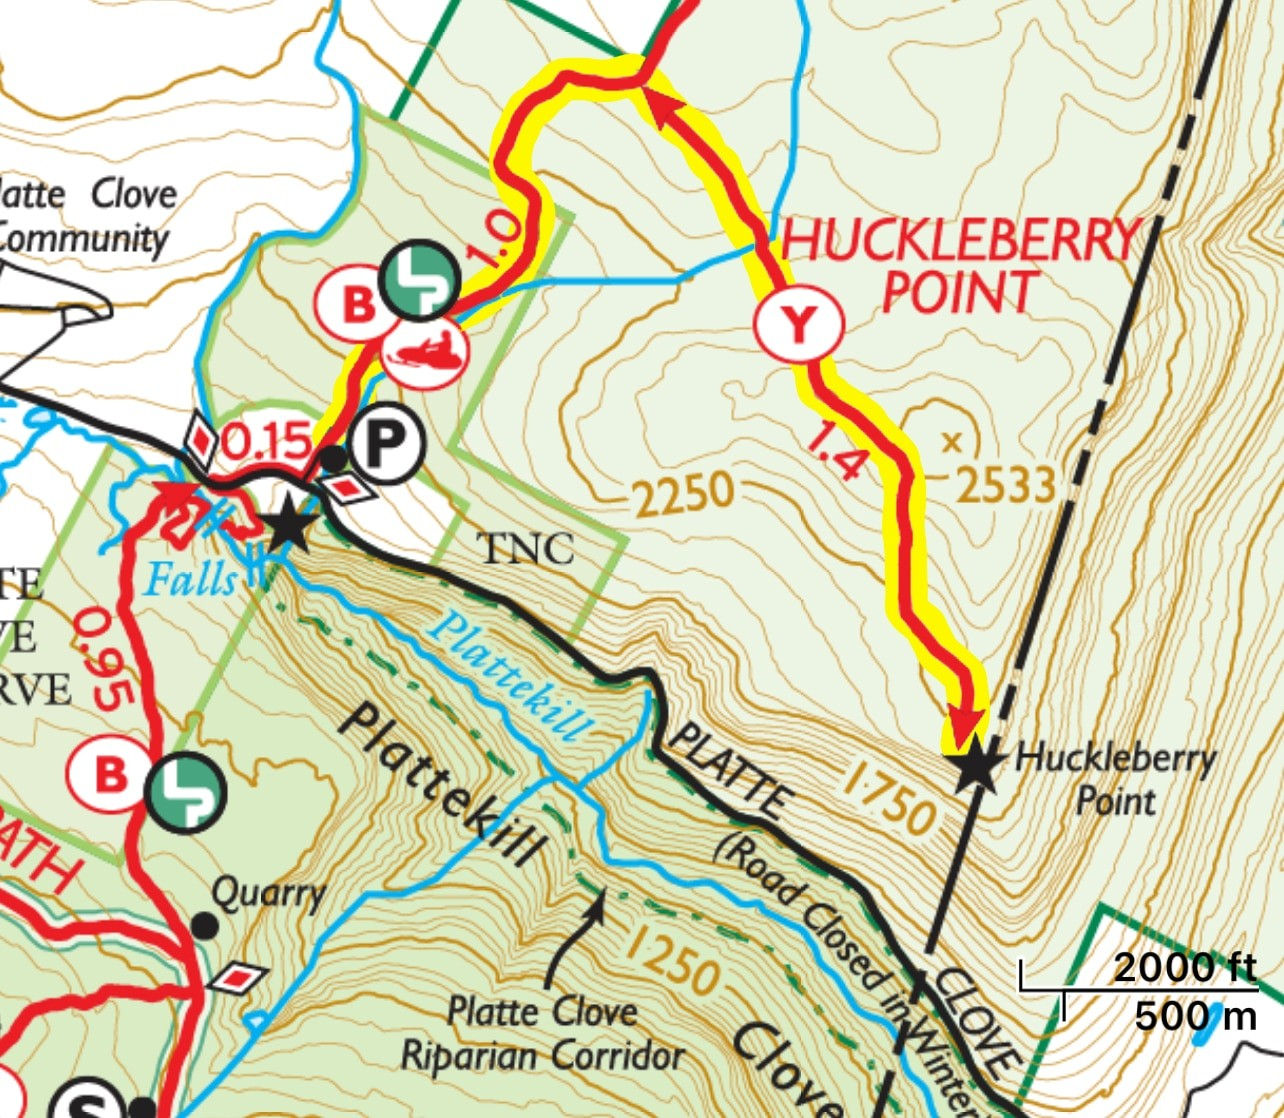 Huckleberry Point Trail Map